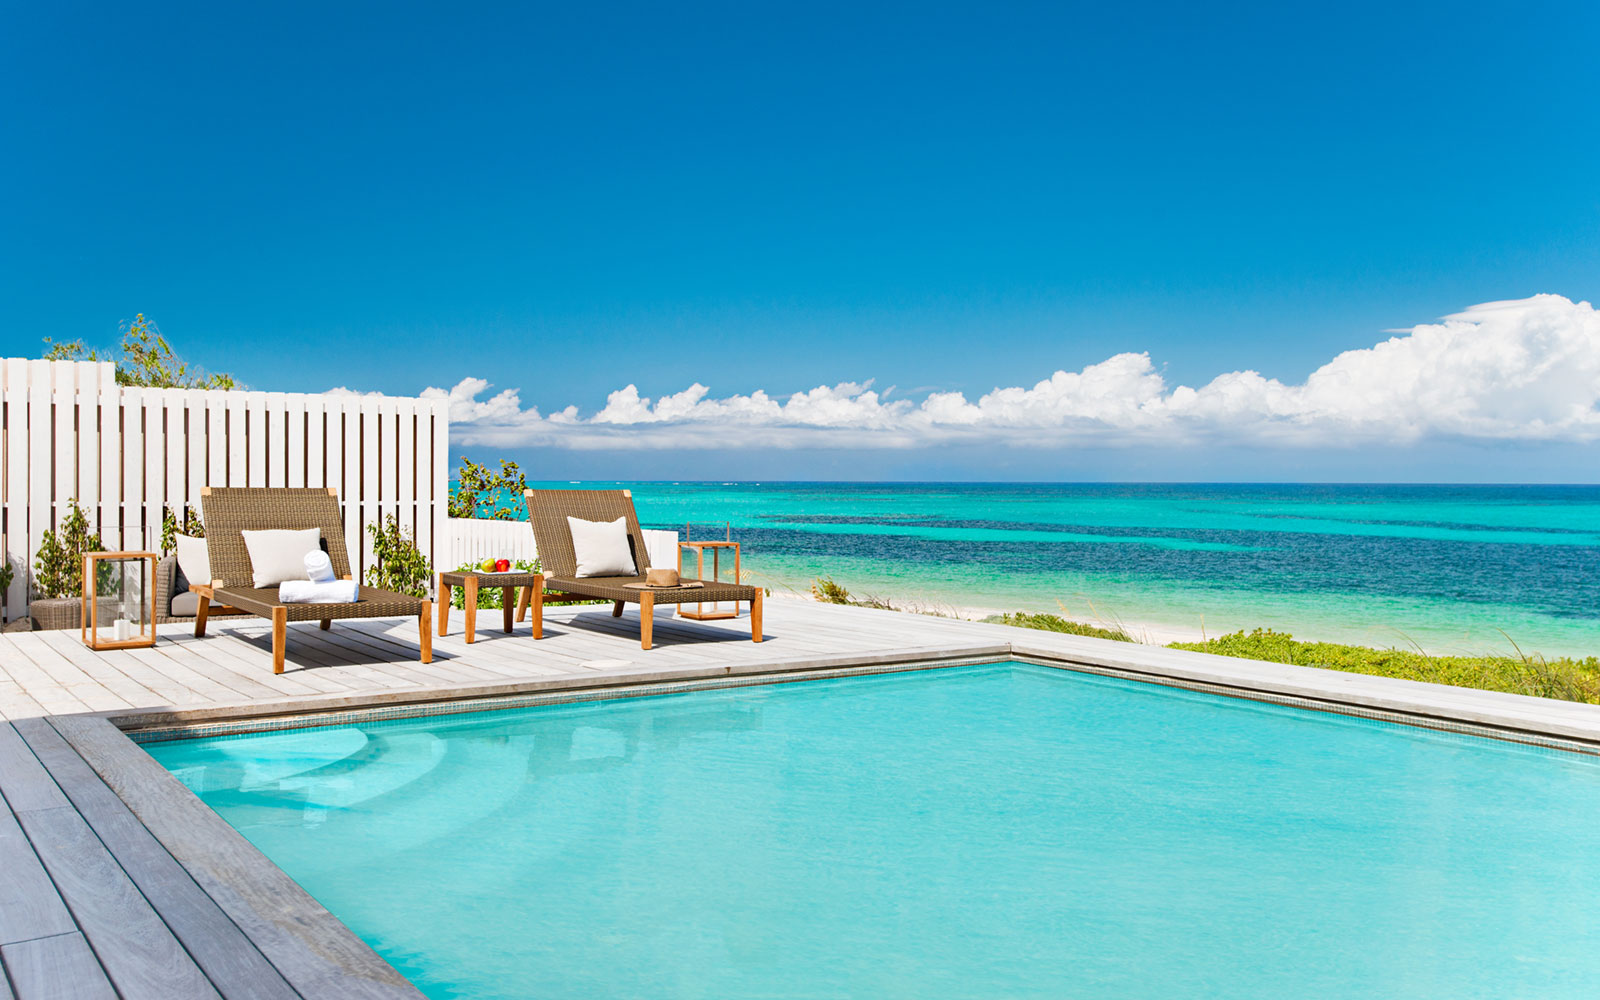 Sailrock Resort, Turks & Caicos